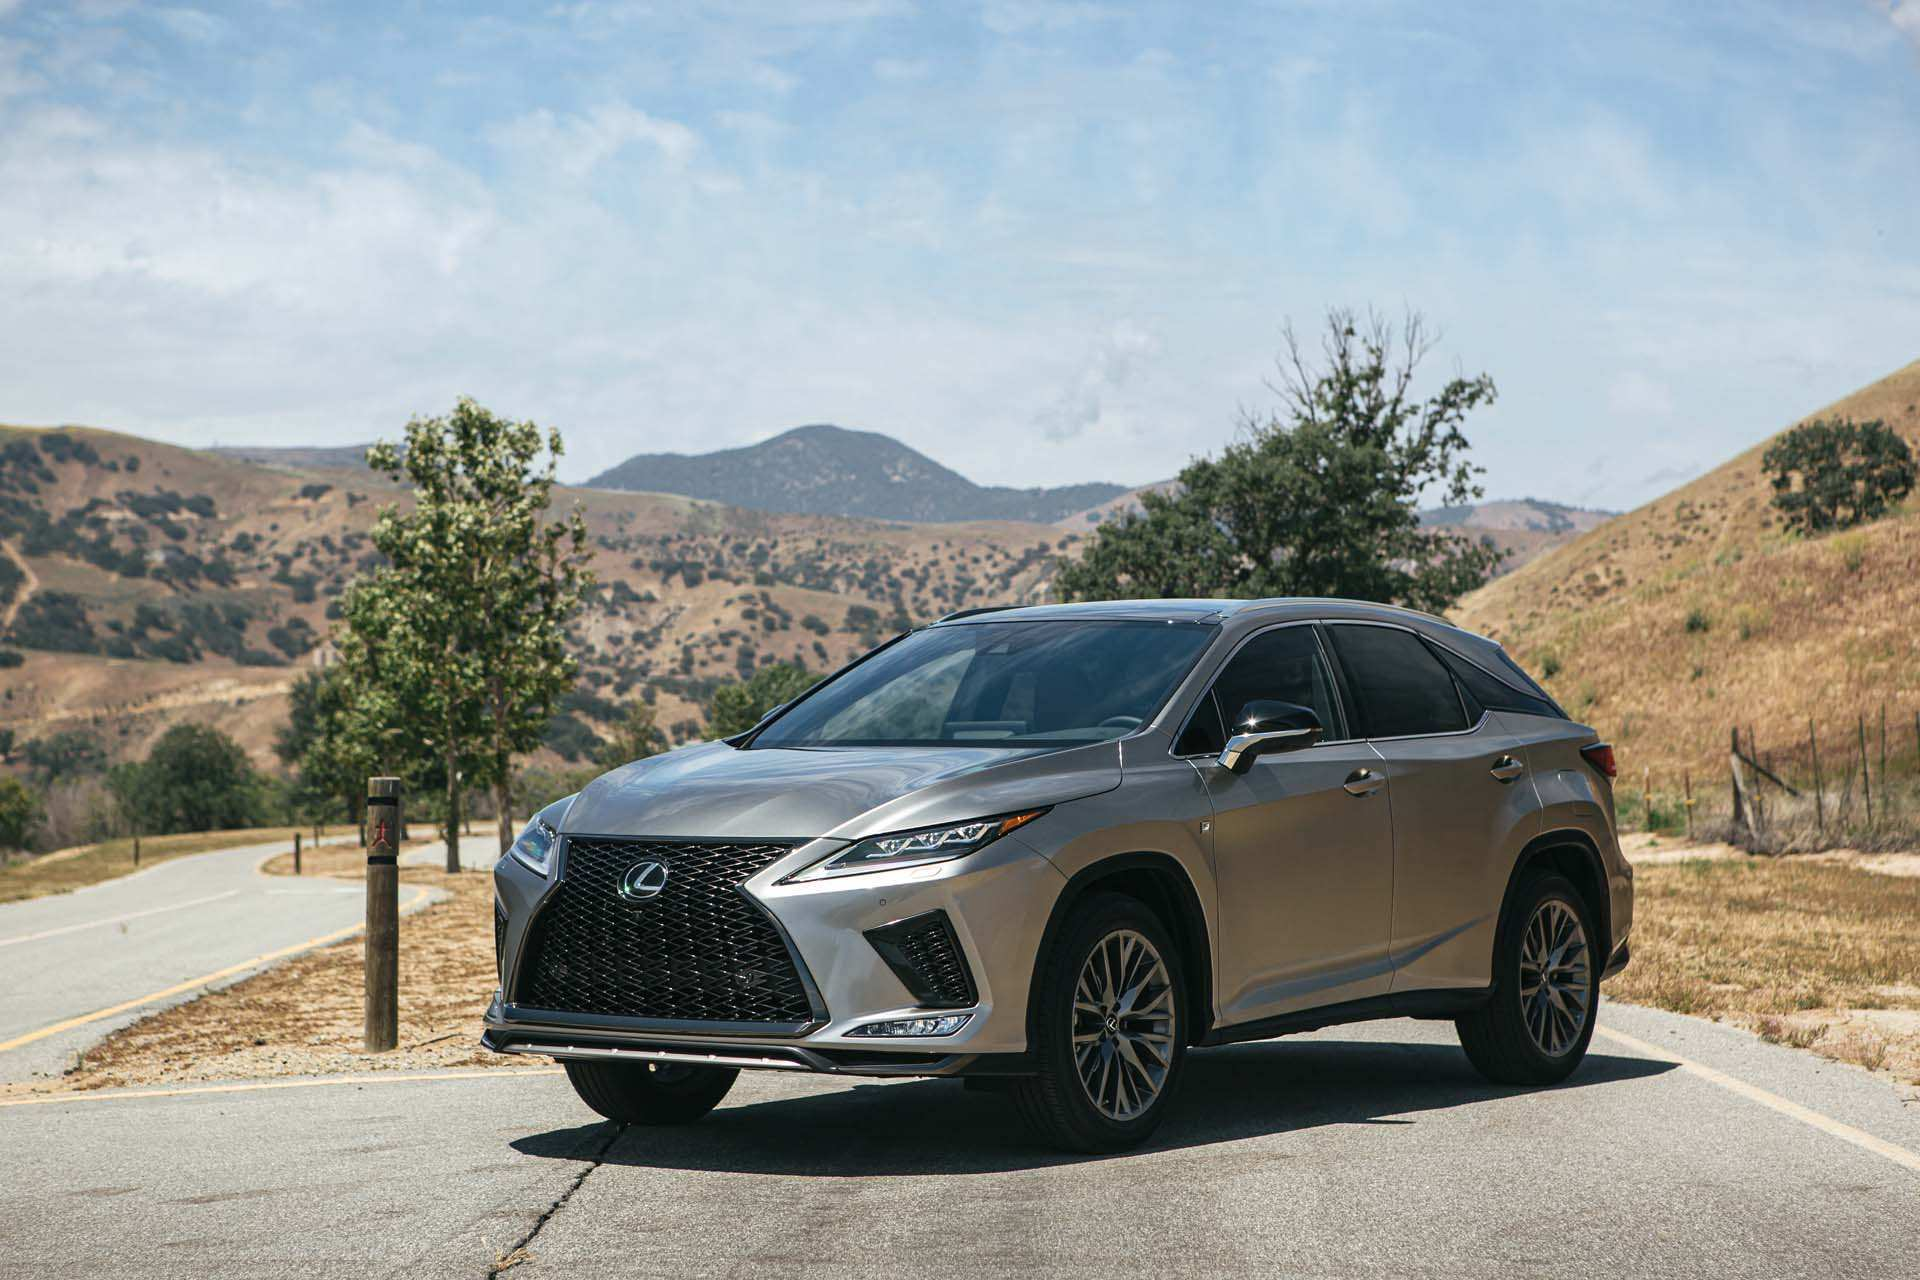 17 All New Lexus Suv Rx 2020 Exterior by Lexus Suv Rx 2020